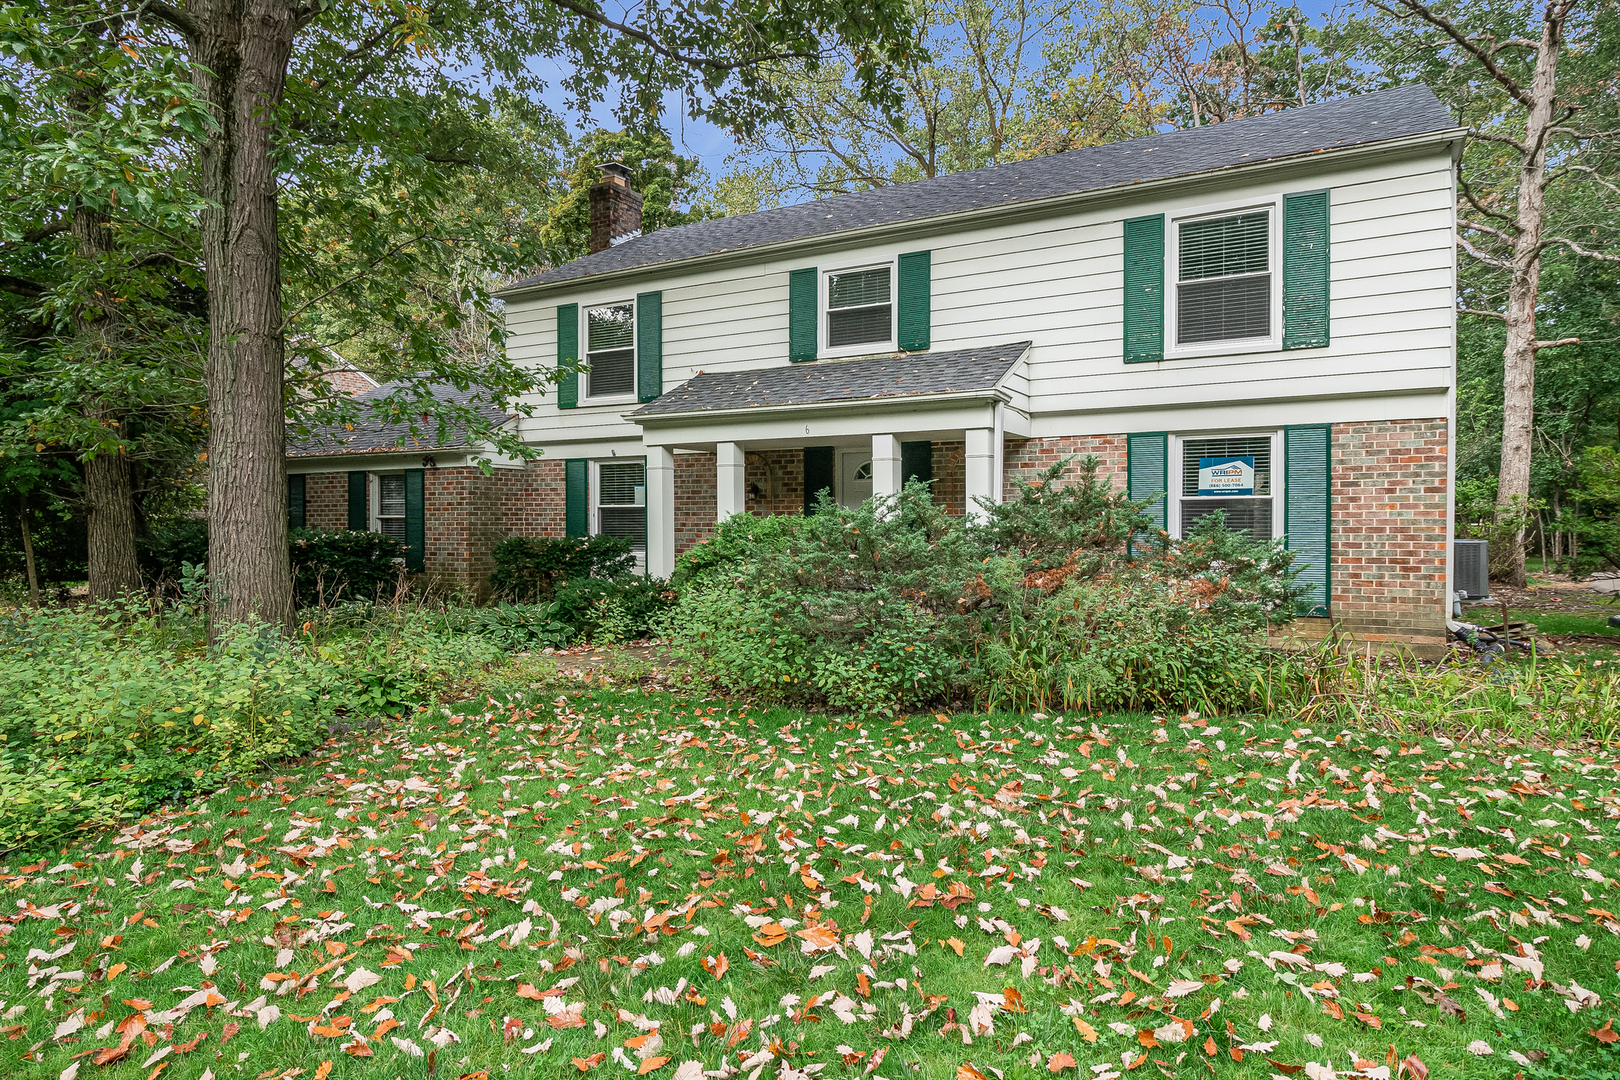 """FANTASTIC LOCATION IN LINCOLNSHIRE SQUARE. 4 BED, 2 FULL & 2 1/2 BATH 3,088SF TREASURE THAT'S MODERN AND READY FOR NEW OWNERS. BRAND NEW KITCHEN HAS 32"""" WHITE SHAKER CABINETS/GRANITE COUNTERTOPS/FLOORING/SS APPLIANCES. GRAND 22X12 FAMILY ROOM HAS BRICK-WALLED FIREPLACE. HARDWOOD FLOORING IN 2ND FLOOR BEDROOMS, BRAND NEW CARPETING/6 PANEL DOORS/NEW BATHROOM VANITIES/LIGHTING. PARTIALLY WOODED LOT, FINISHED BASEMENT. BONUS ROOM ADDITION BY LAUNDRY AREA WITH 1/2 BATH."""